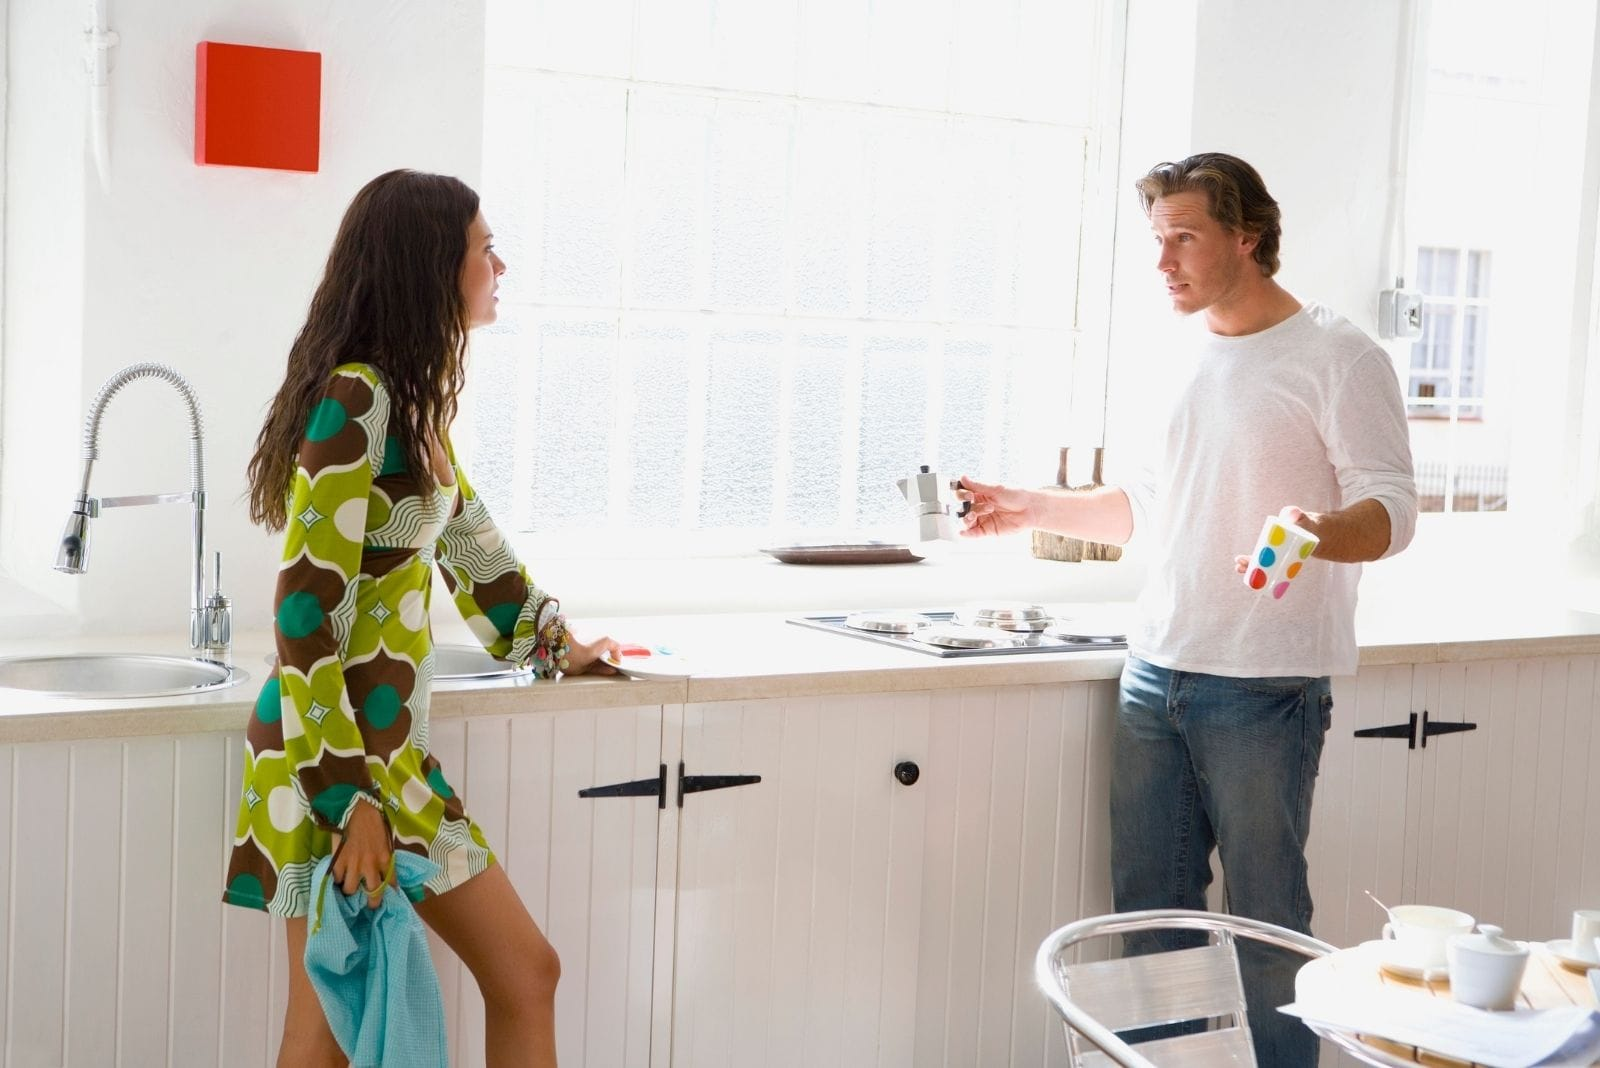 couple arguing in kitchen while cleaning dishes in the kitchen sink